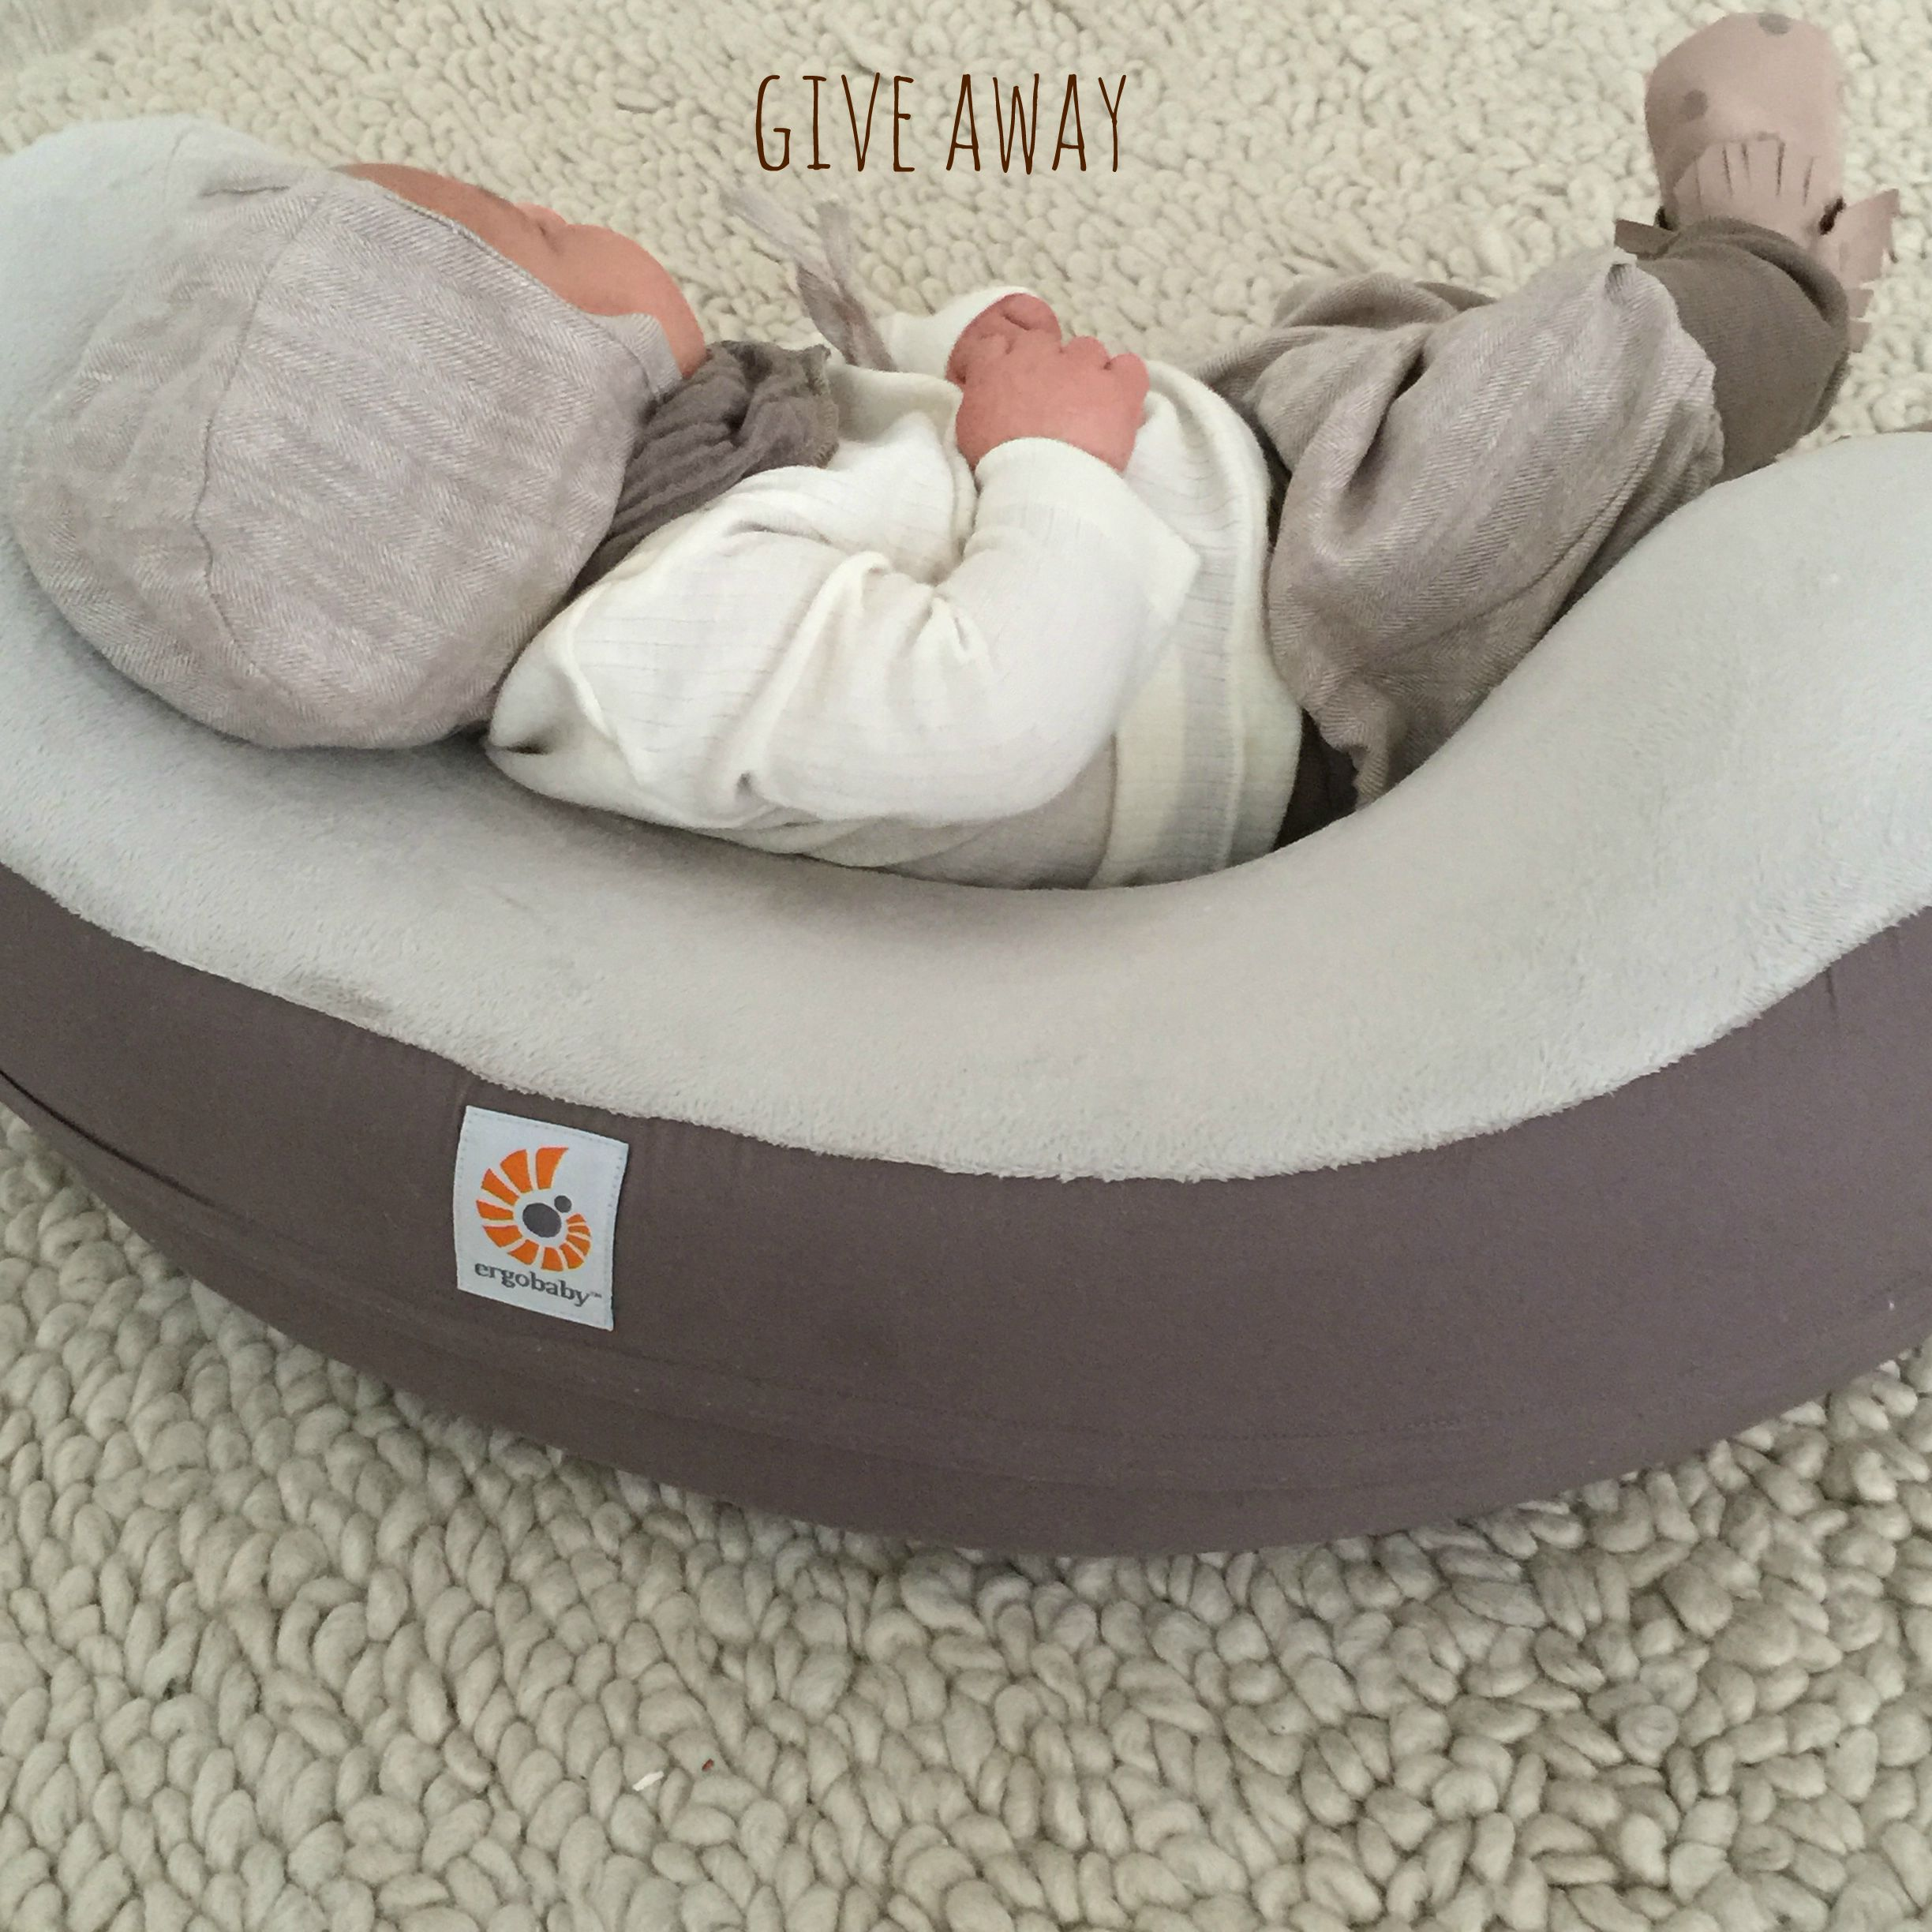 ergobaby give away